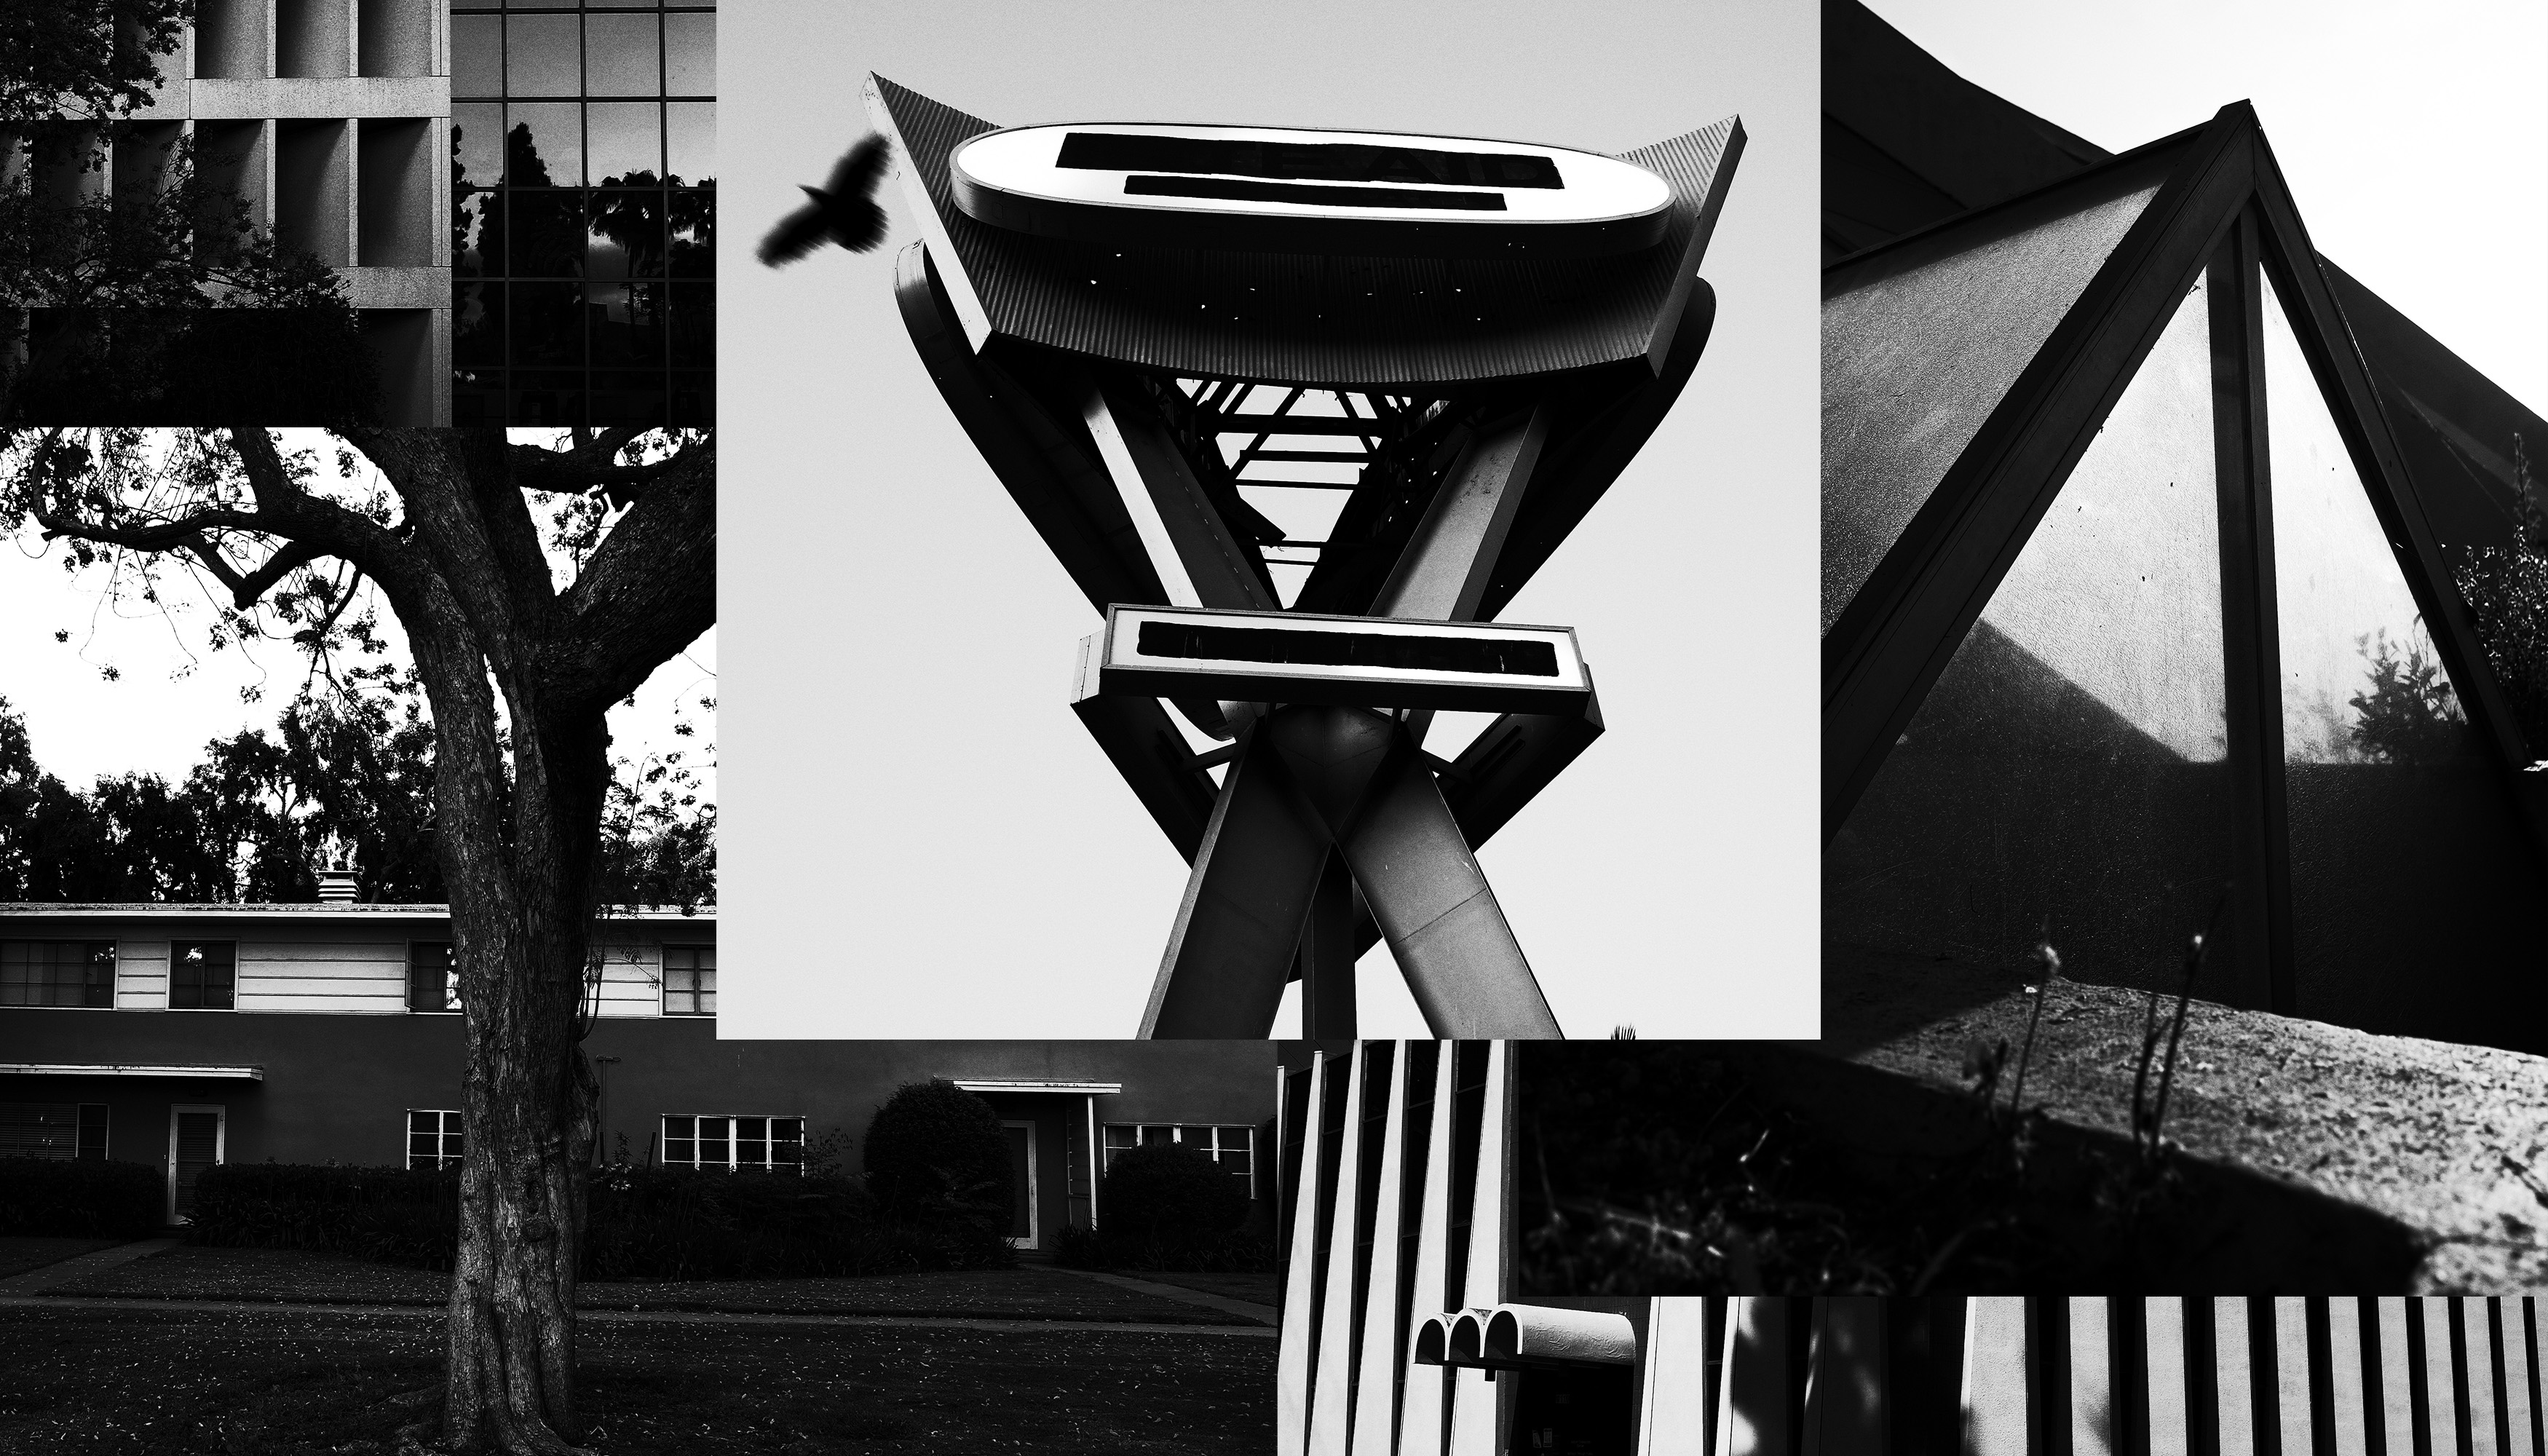 A collage of black-and-white photos of midcentury buildings and signs in south L.A.